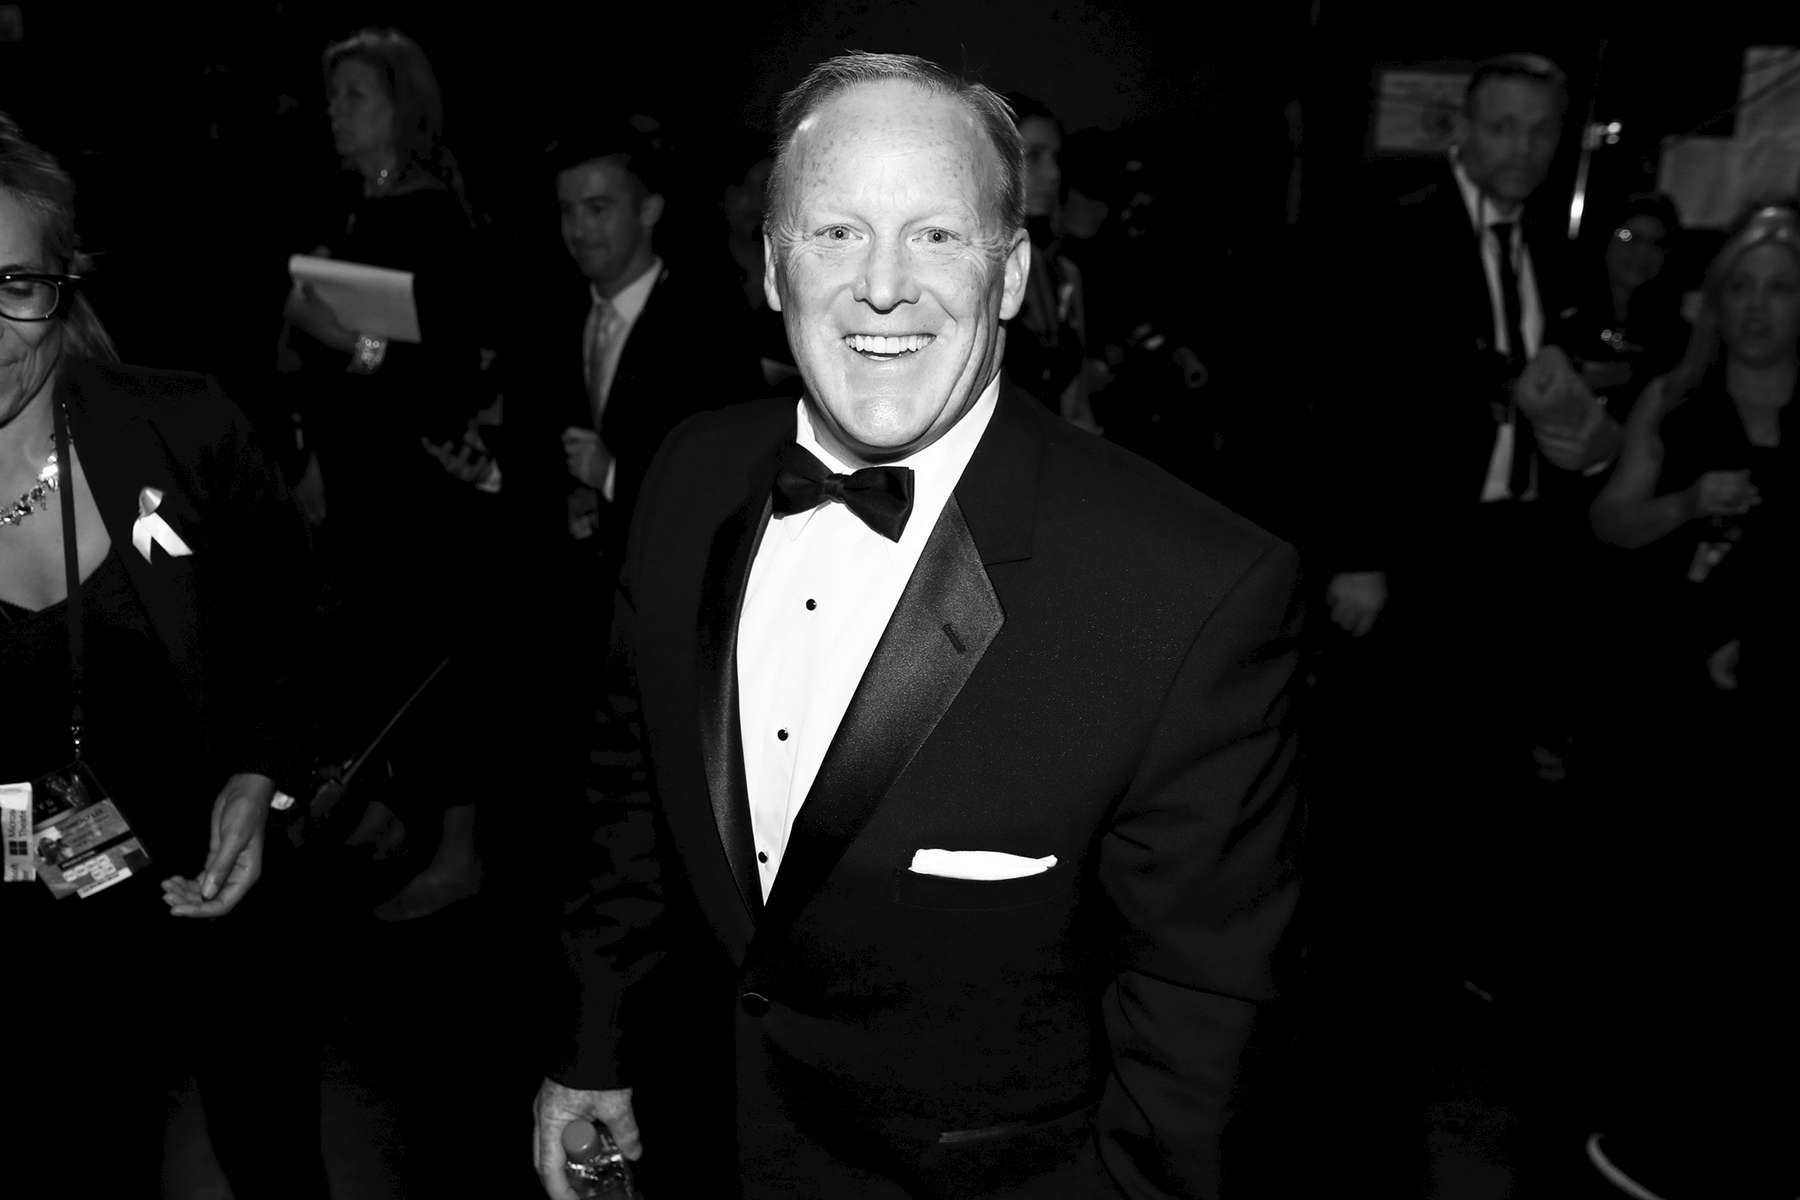 Sean Spicer attends the 69th Primetime Emmy Awards on Sunday, Sept. 17, 2017, at the Microsoft Theater in Los Angeles. (Photo by Matt Sayles/Invision for the Television Academy/AP Images)